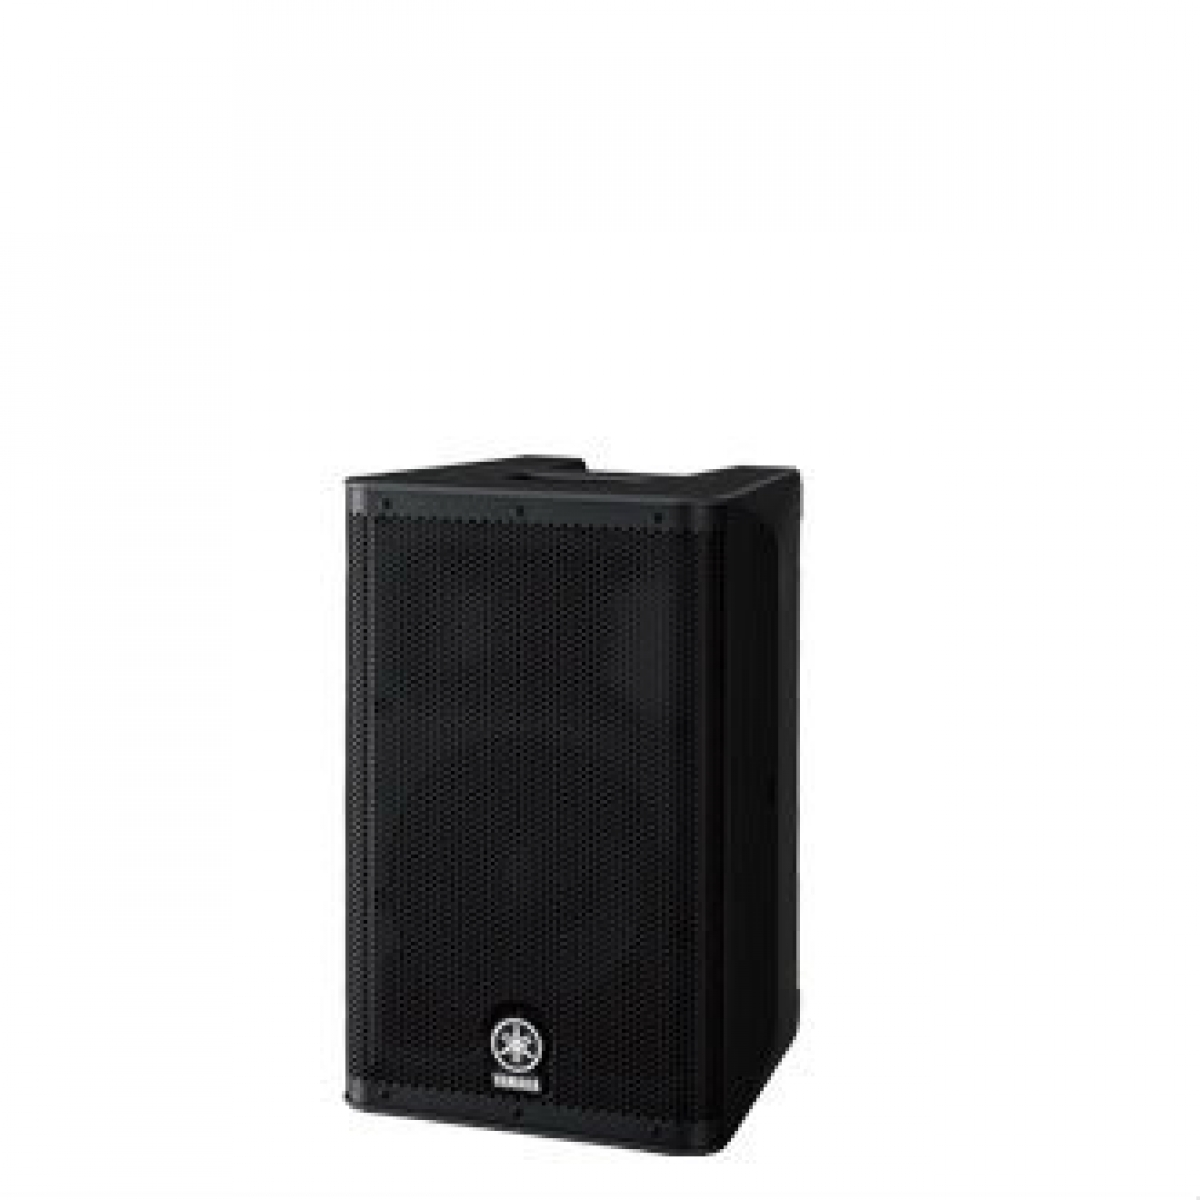 "Yamaha DXR8 8"" 2-way Active Loudspeaker 